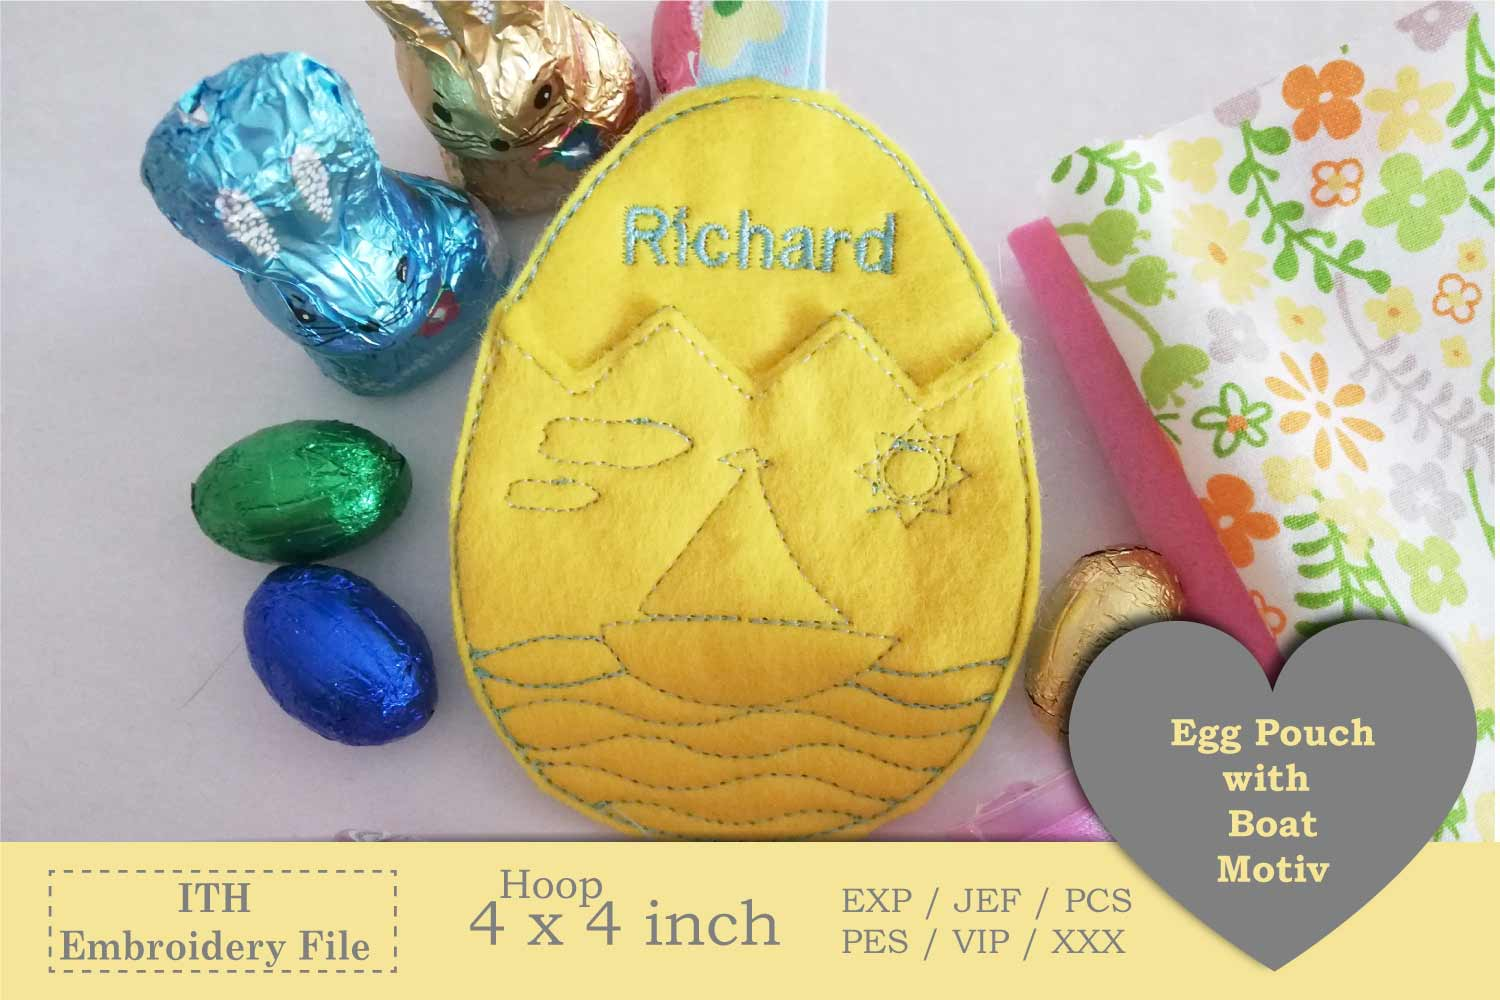 ITH - Egg-Pouch Mini-Bundle - 3 Motives example image 3